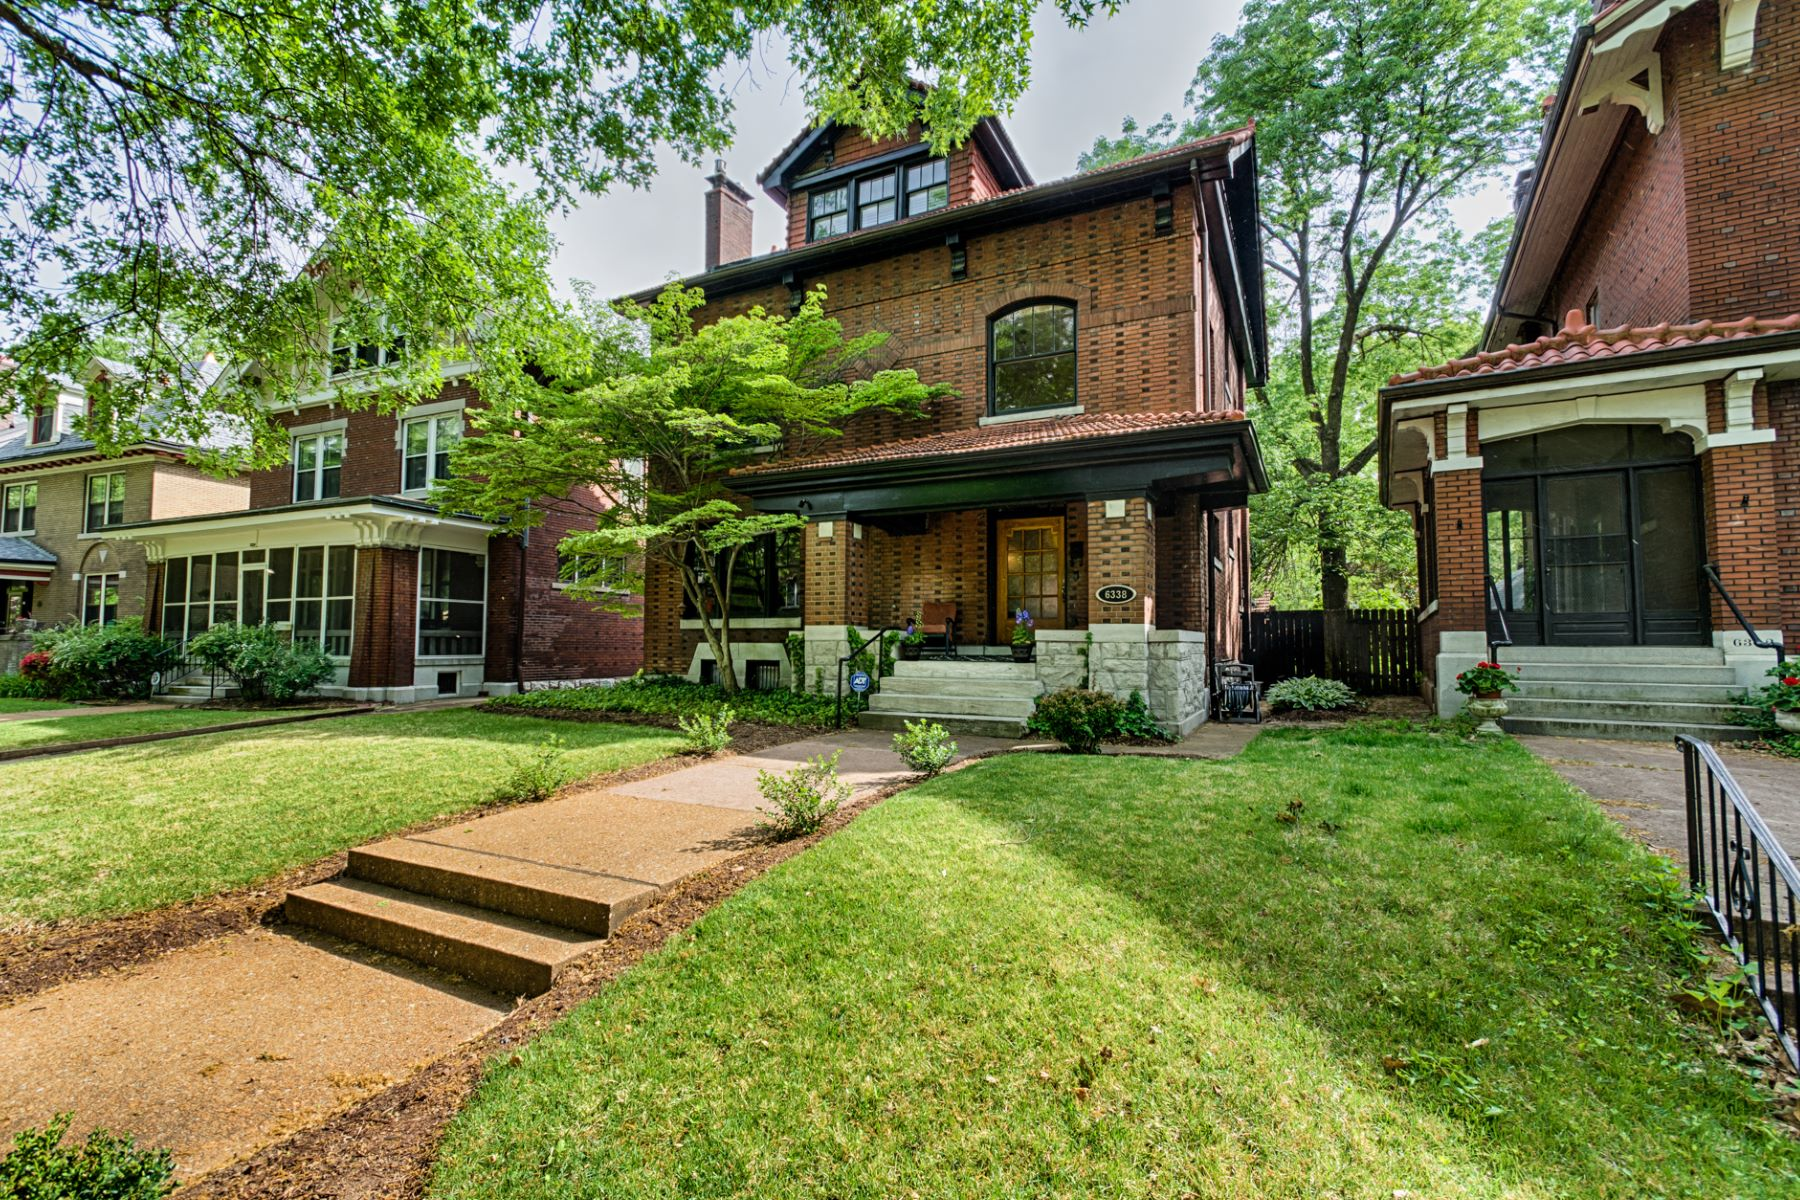 Single Family Home for Sale at Lots of character and an amazing location 6338 Waterman Avenue University City, Missouri 63130 United States